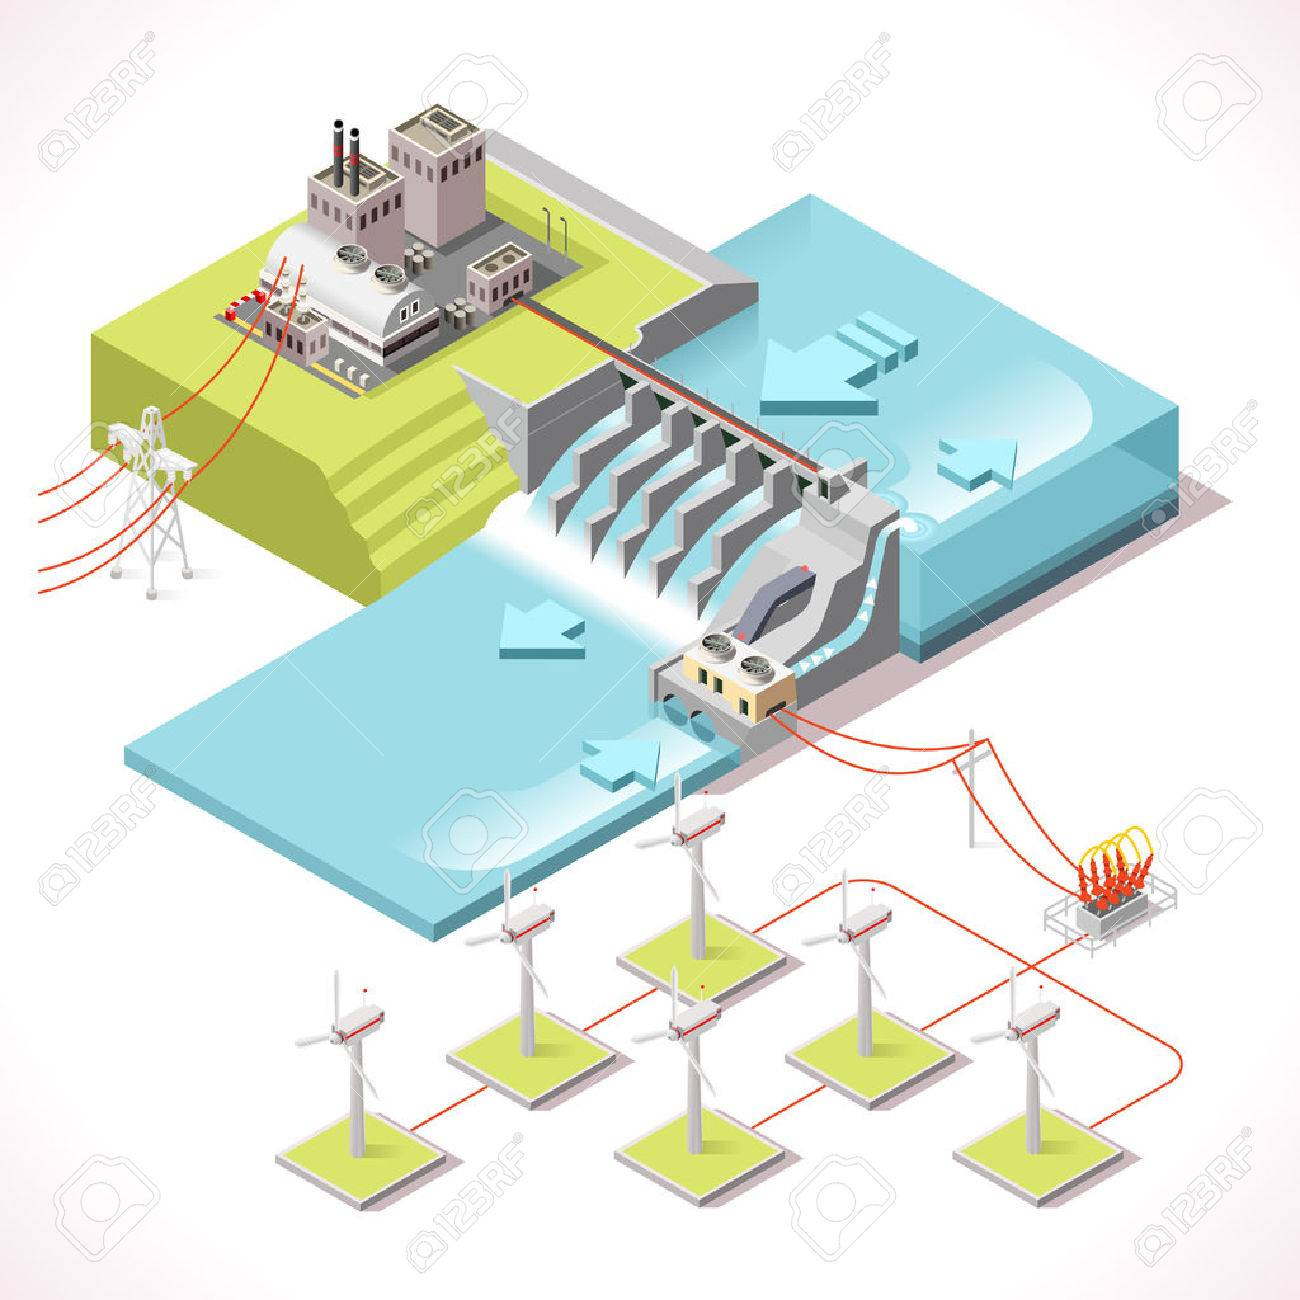 48084801 Hybrid Power Systems Hydroelectric Plant and Windmill Factory Isometric Electric Power Station Elect Stock Vector hydroelectric plant diagram hydroelectric energy \u2022 wiring diagram  at bayanpartner.co